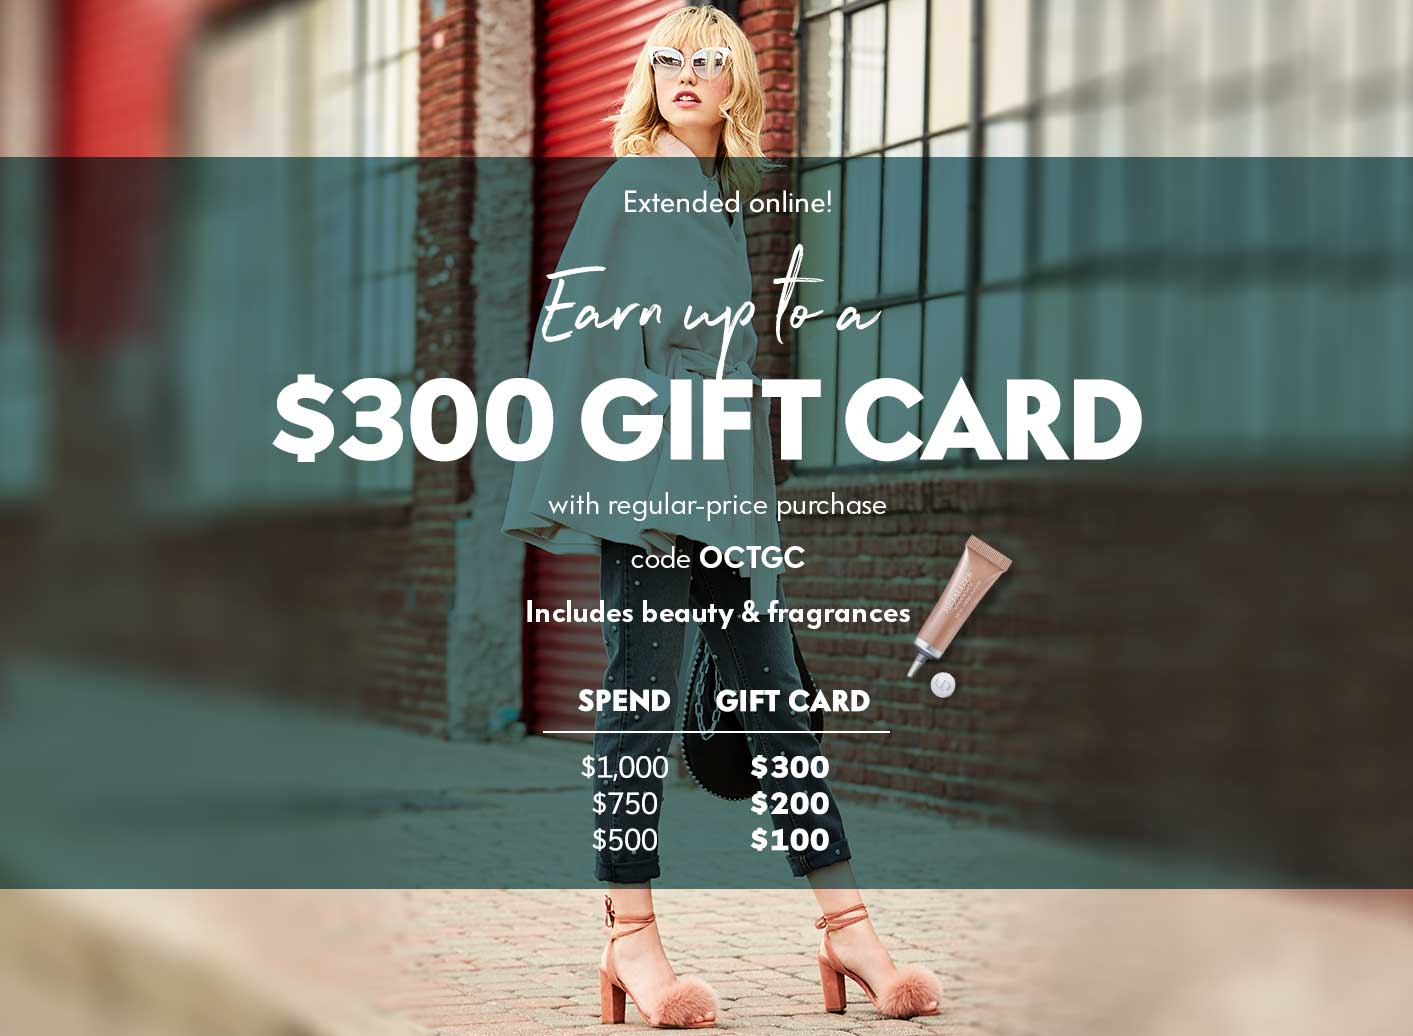 Extended one day online: Earn up to a $300 Gift Card with regular-price purchase code OCTGC - Inlcudes beauty & fragrances